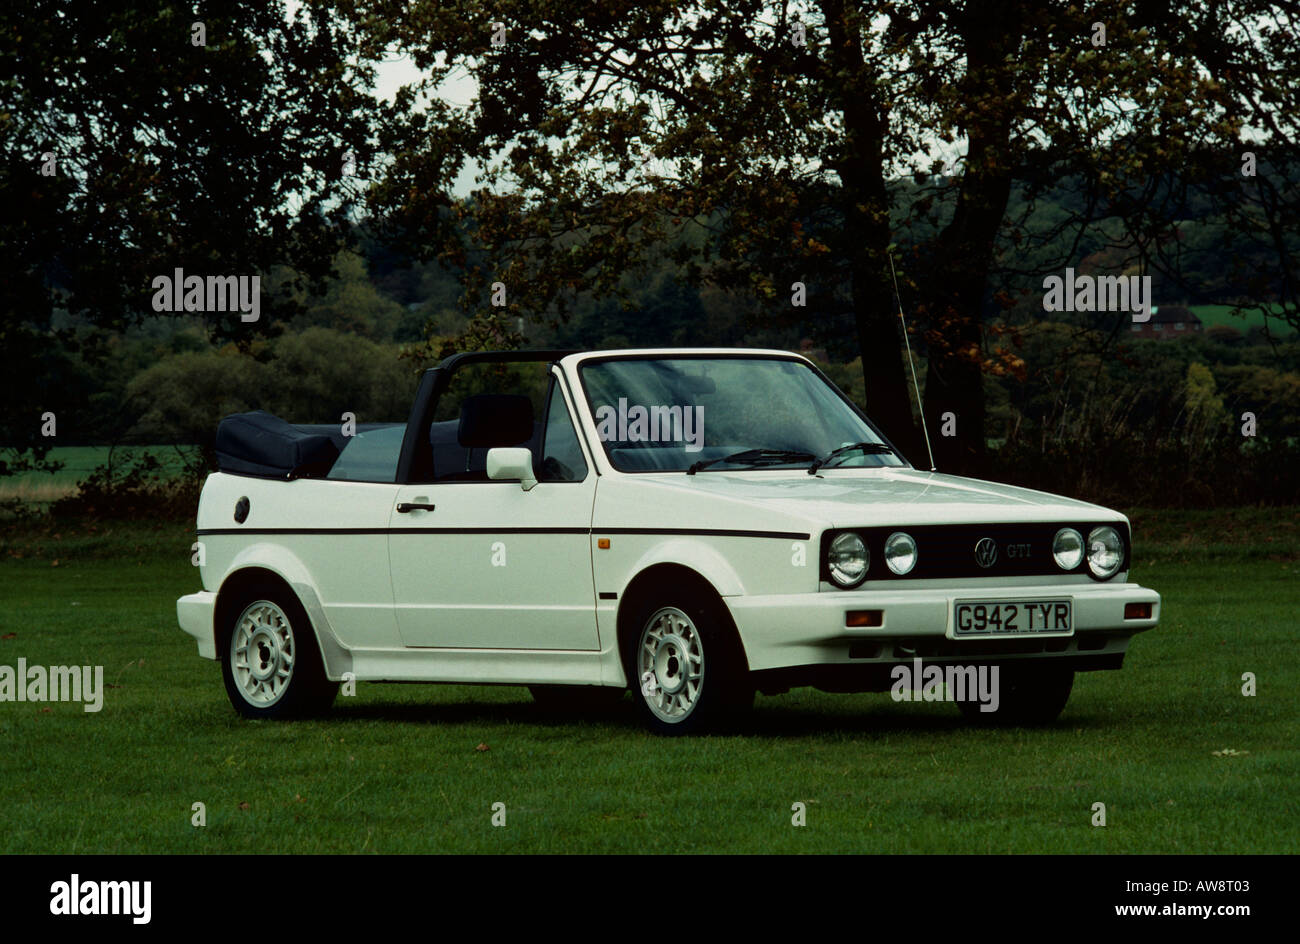 100 volkswagen convertible cabrio volkswagen golf mk1 gti cabriolet mk1 cabriolet 1980 to. Black Bedroom Furniture Sets. Home Design Ideas